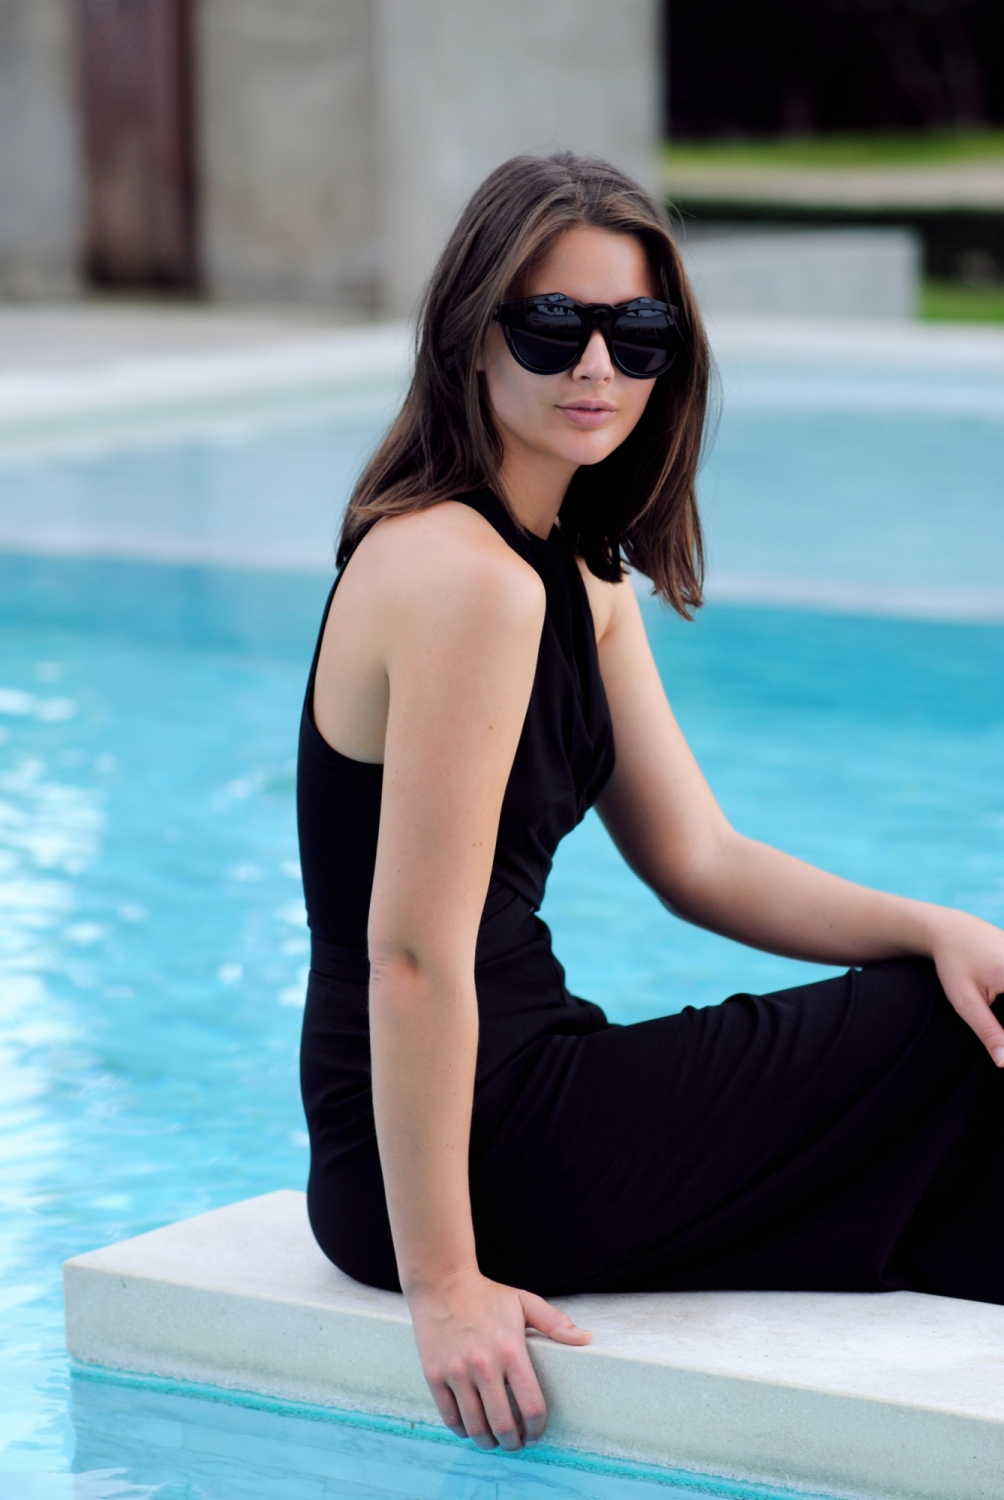 harper and harley_le specs_sunglasses_jumpsuit_thailand_travel_06